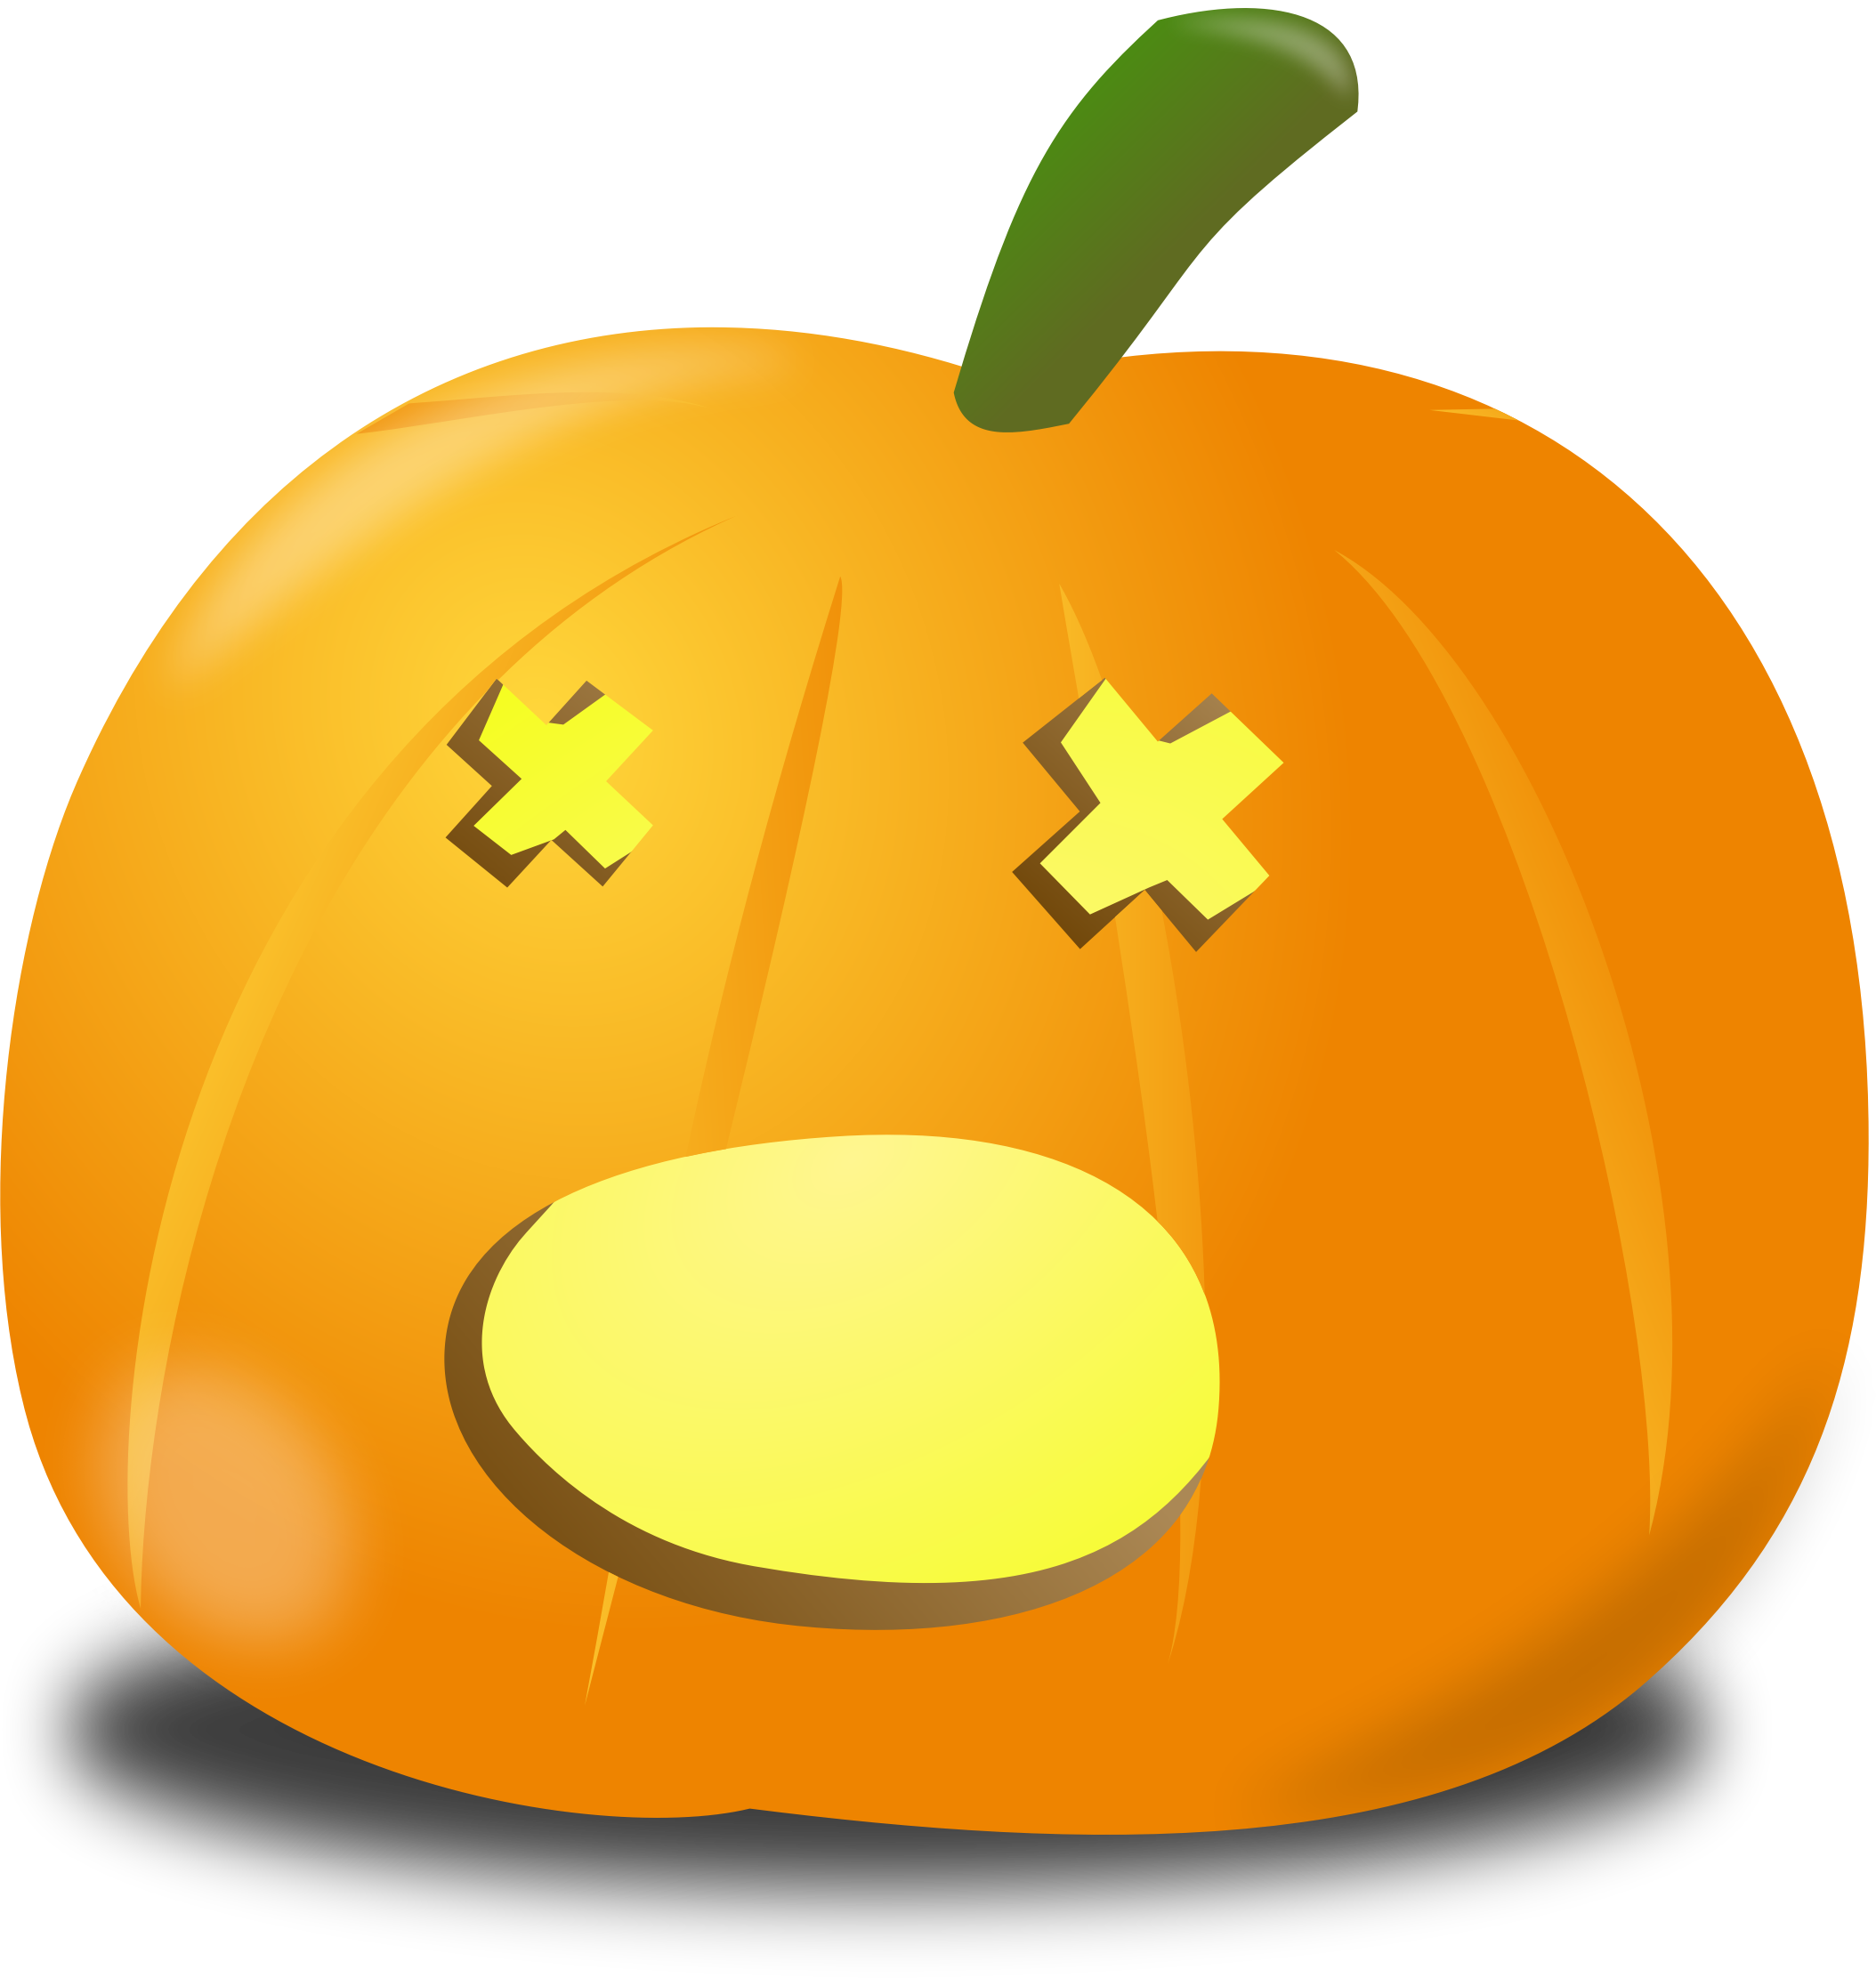 Spooky Halloween Pumpkins messages sticker-10